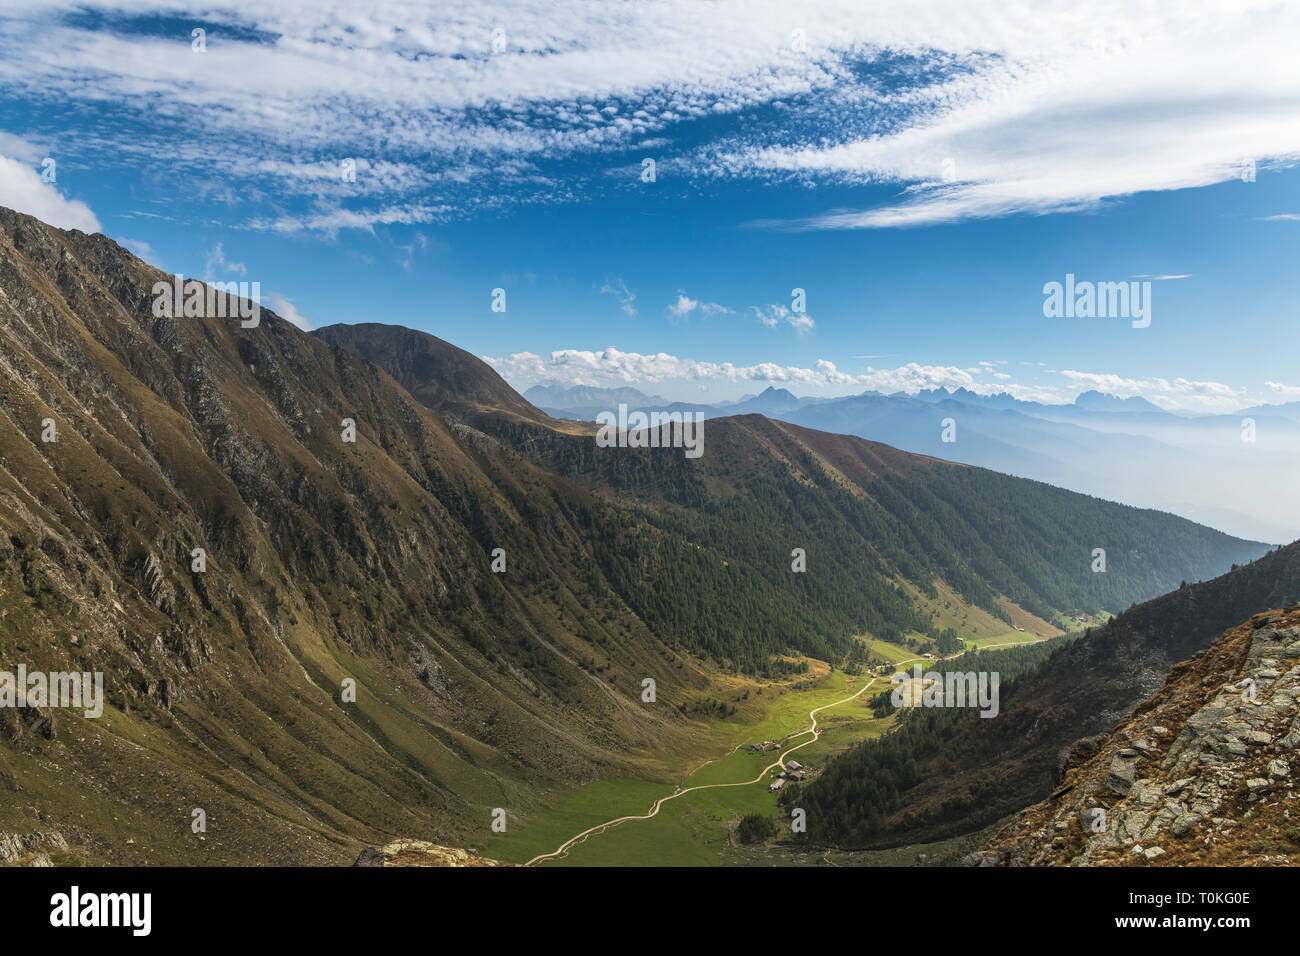 Hike to the Seefeldspitze, view to the Langkofel Group, Valser Tal, Pfunderer Mountains, Zillertal Alps, South Tyrol, Italy Stock Photo